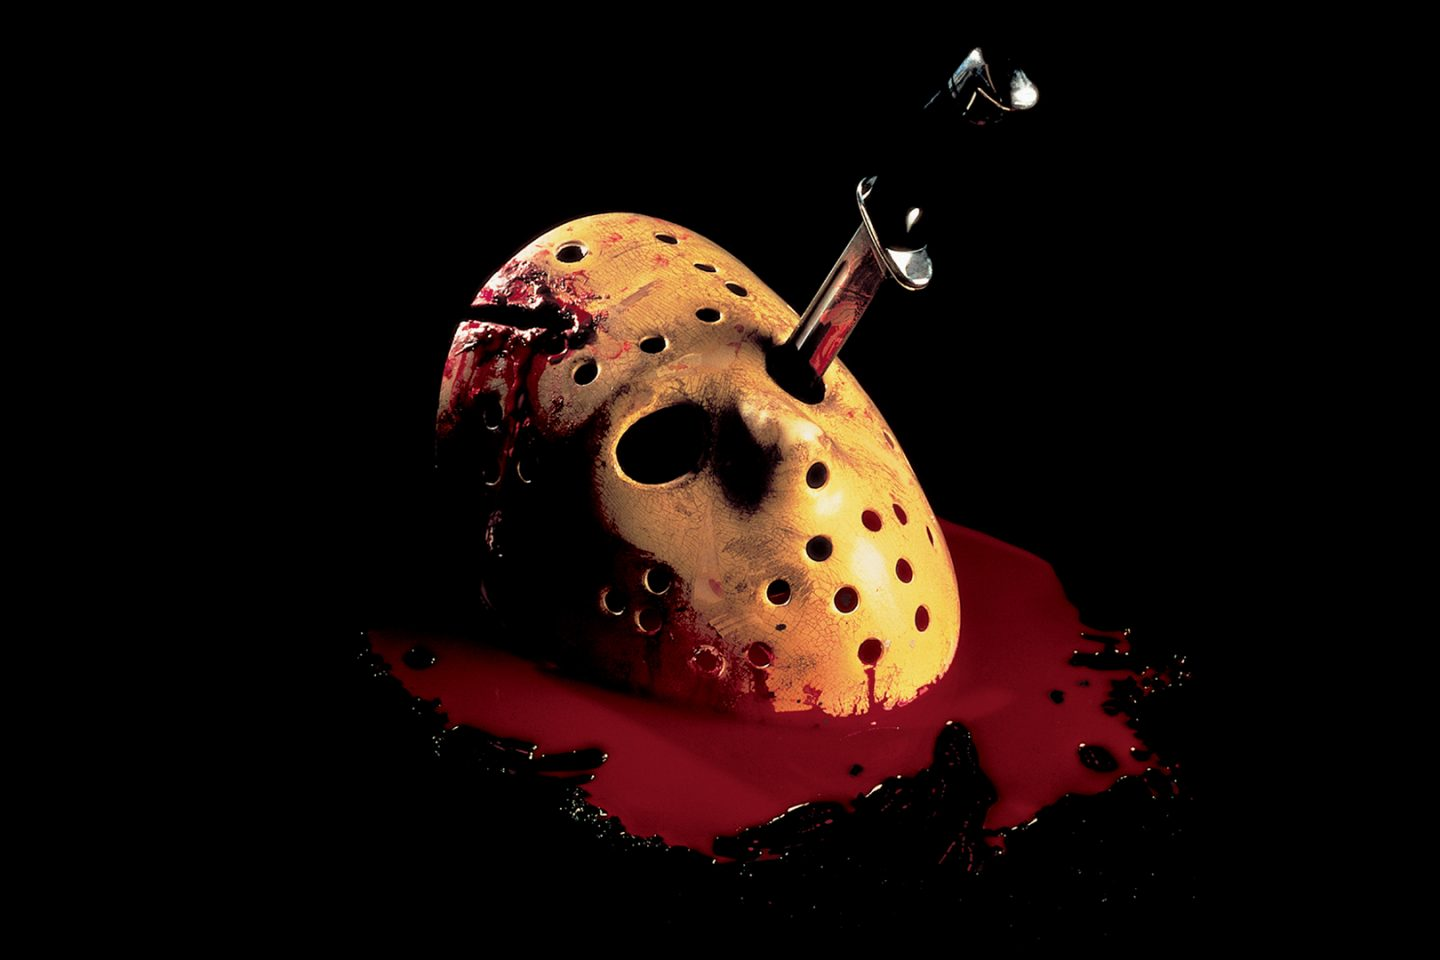 Friday the 13th: The Final Chapter (1984) UD Wallpaper